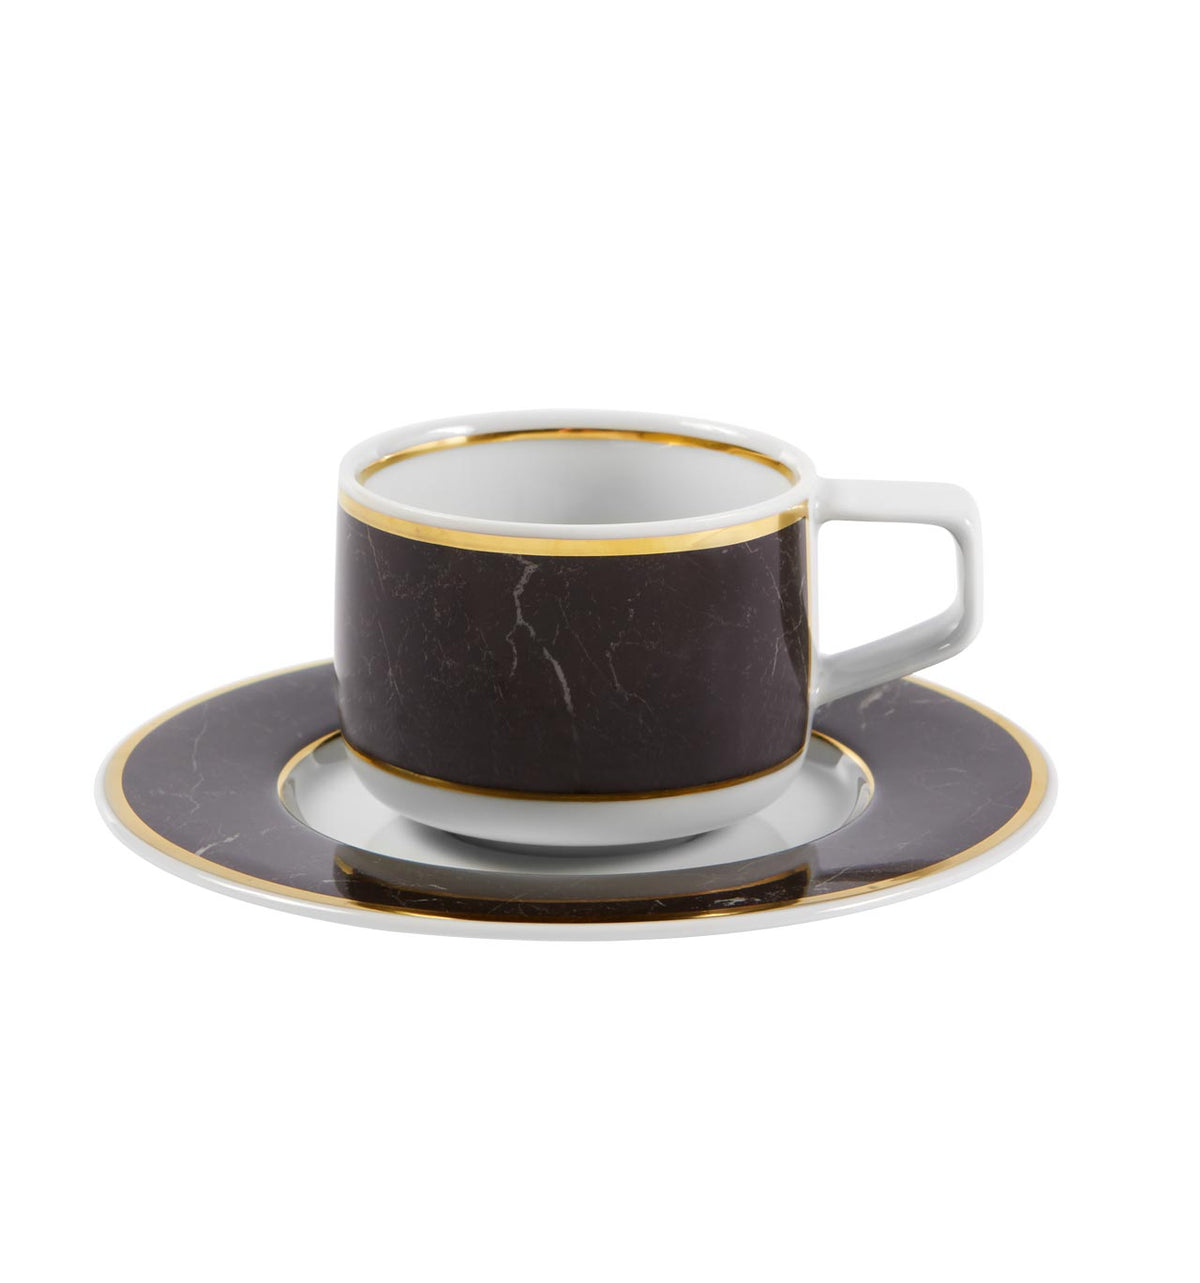 Carrara Coffee Cup & Saucer